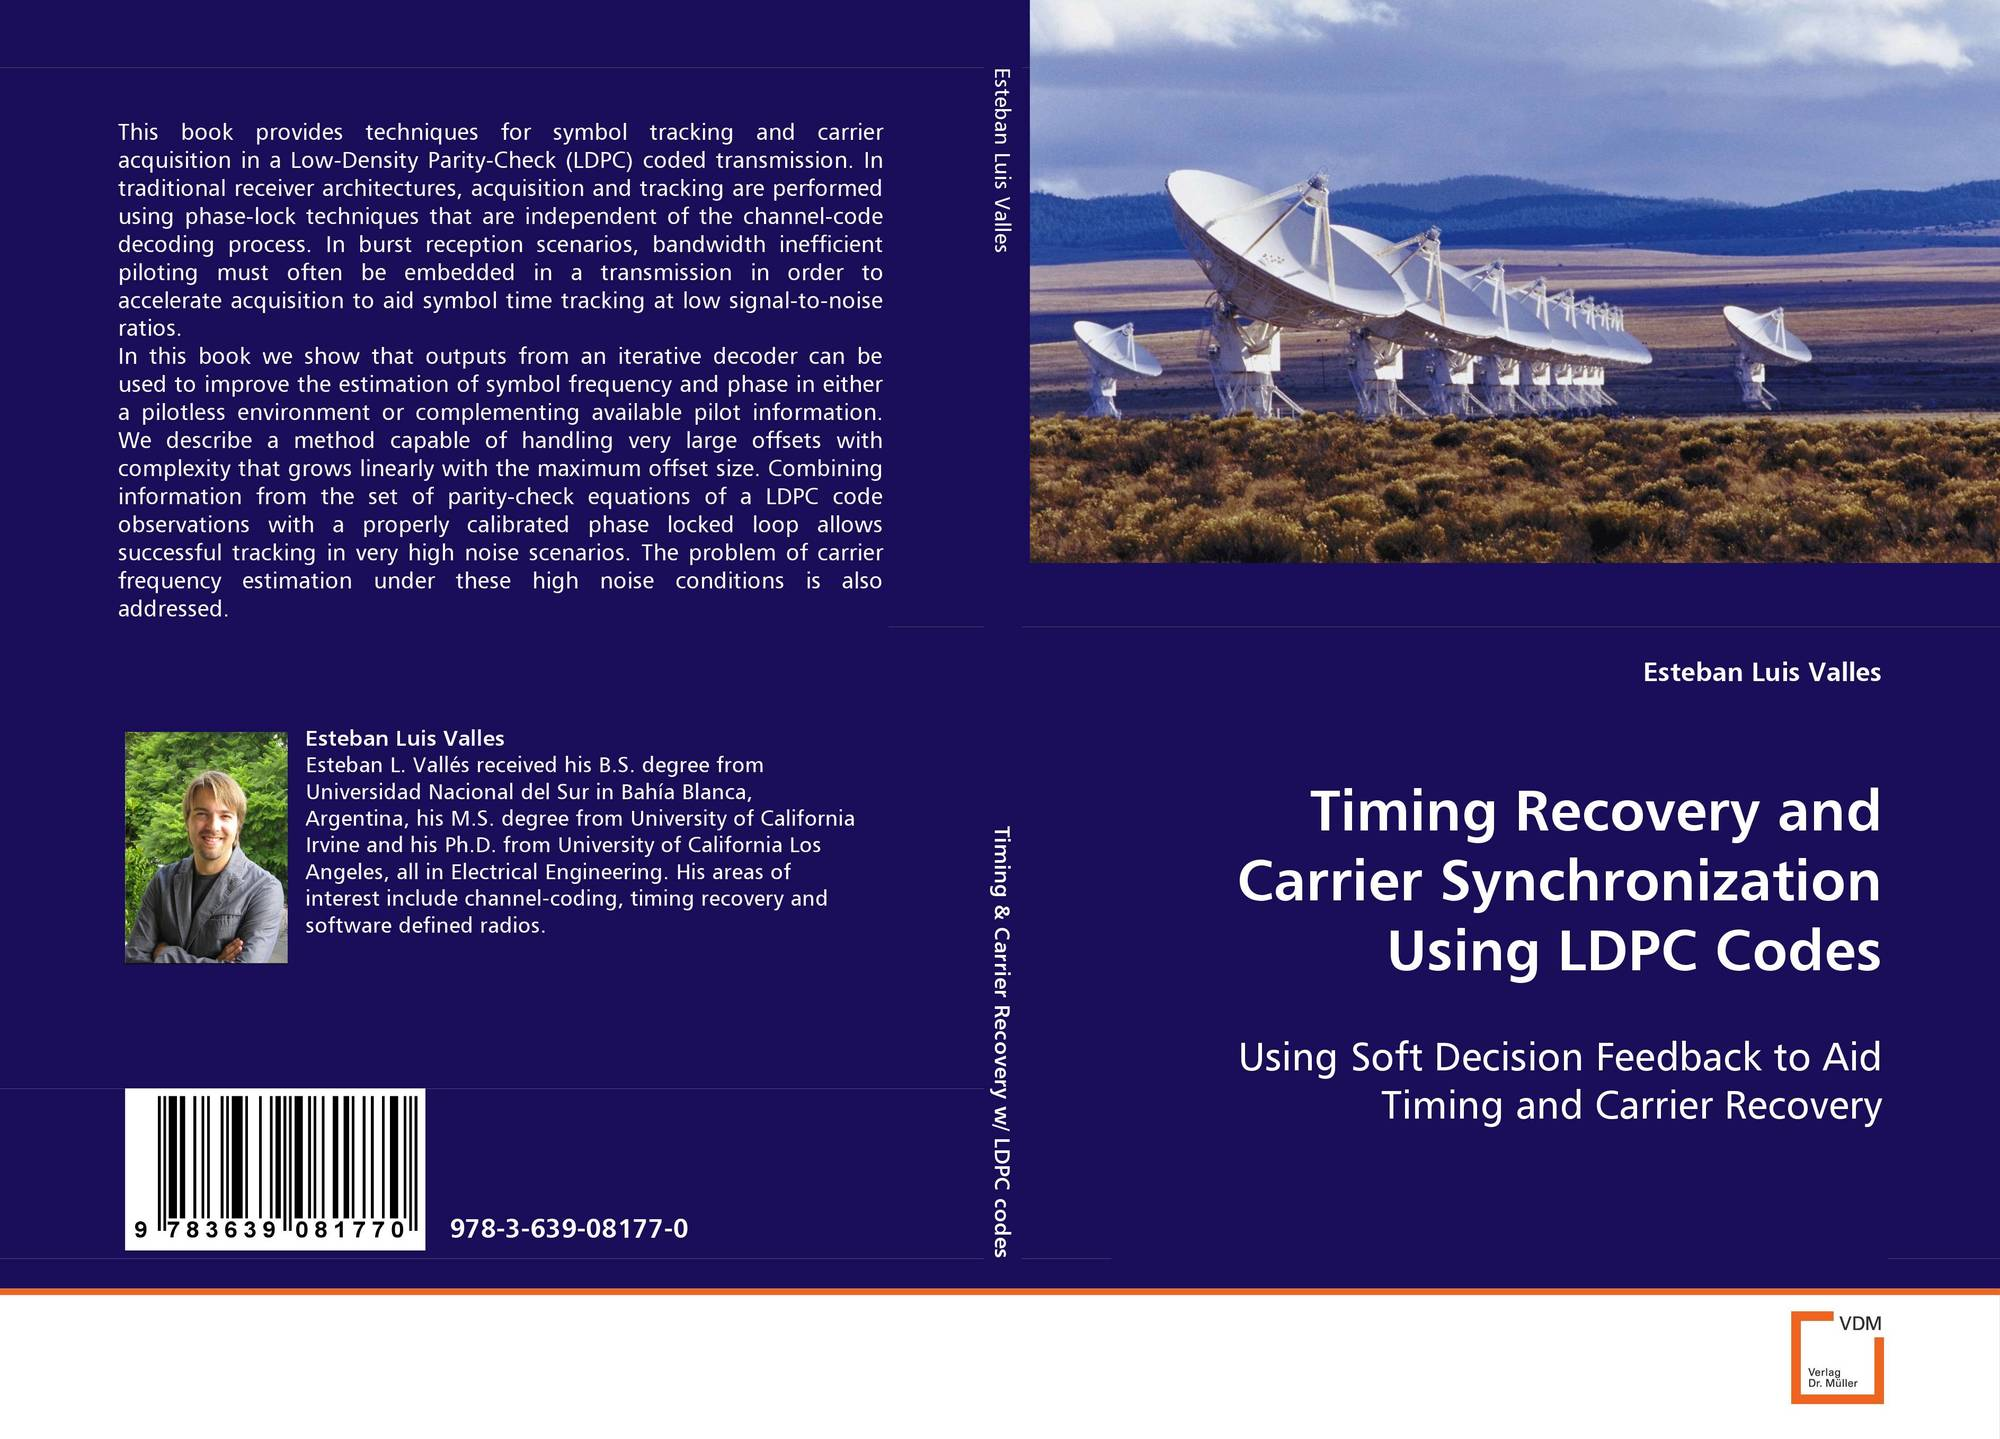 Timing Recovery and Carrier Synchronization UsingLDPC Codes